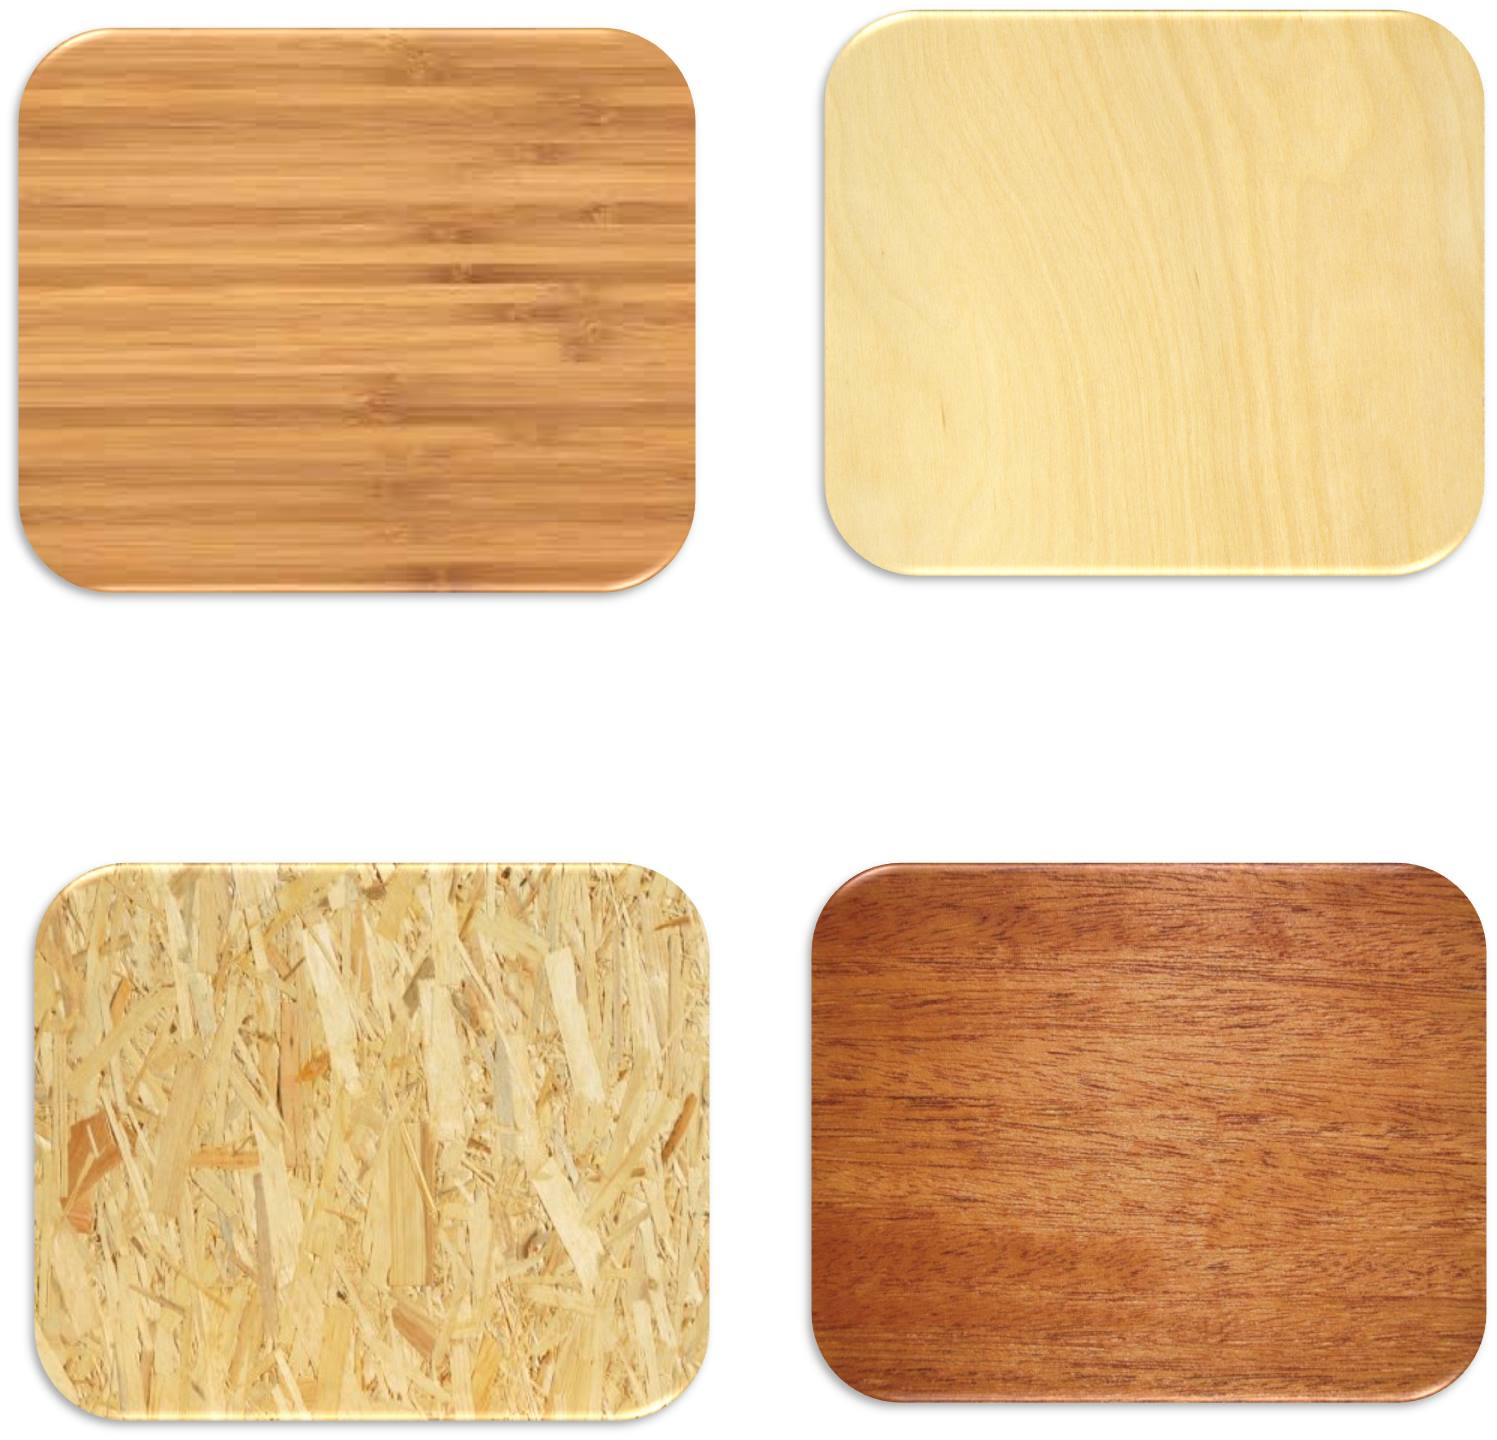 Wooden Mousepads / Placemats